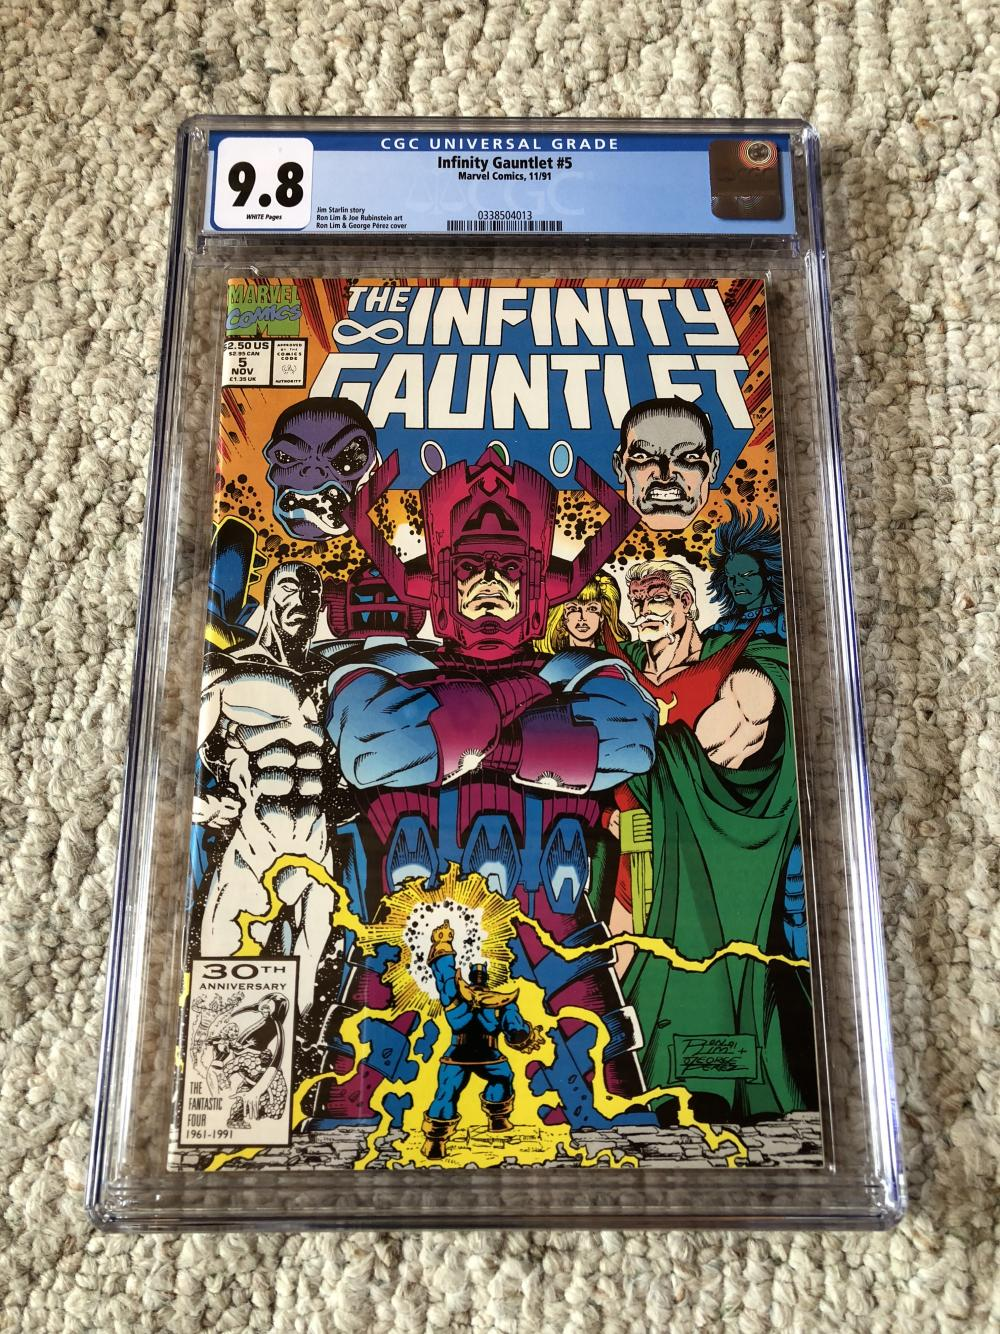 CLOSED] Infinity Gauntlet 5 and 6, X-23, Deadpool